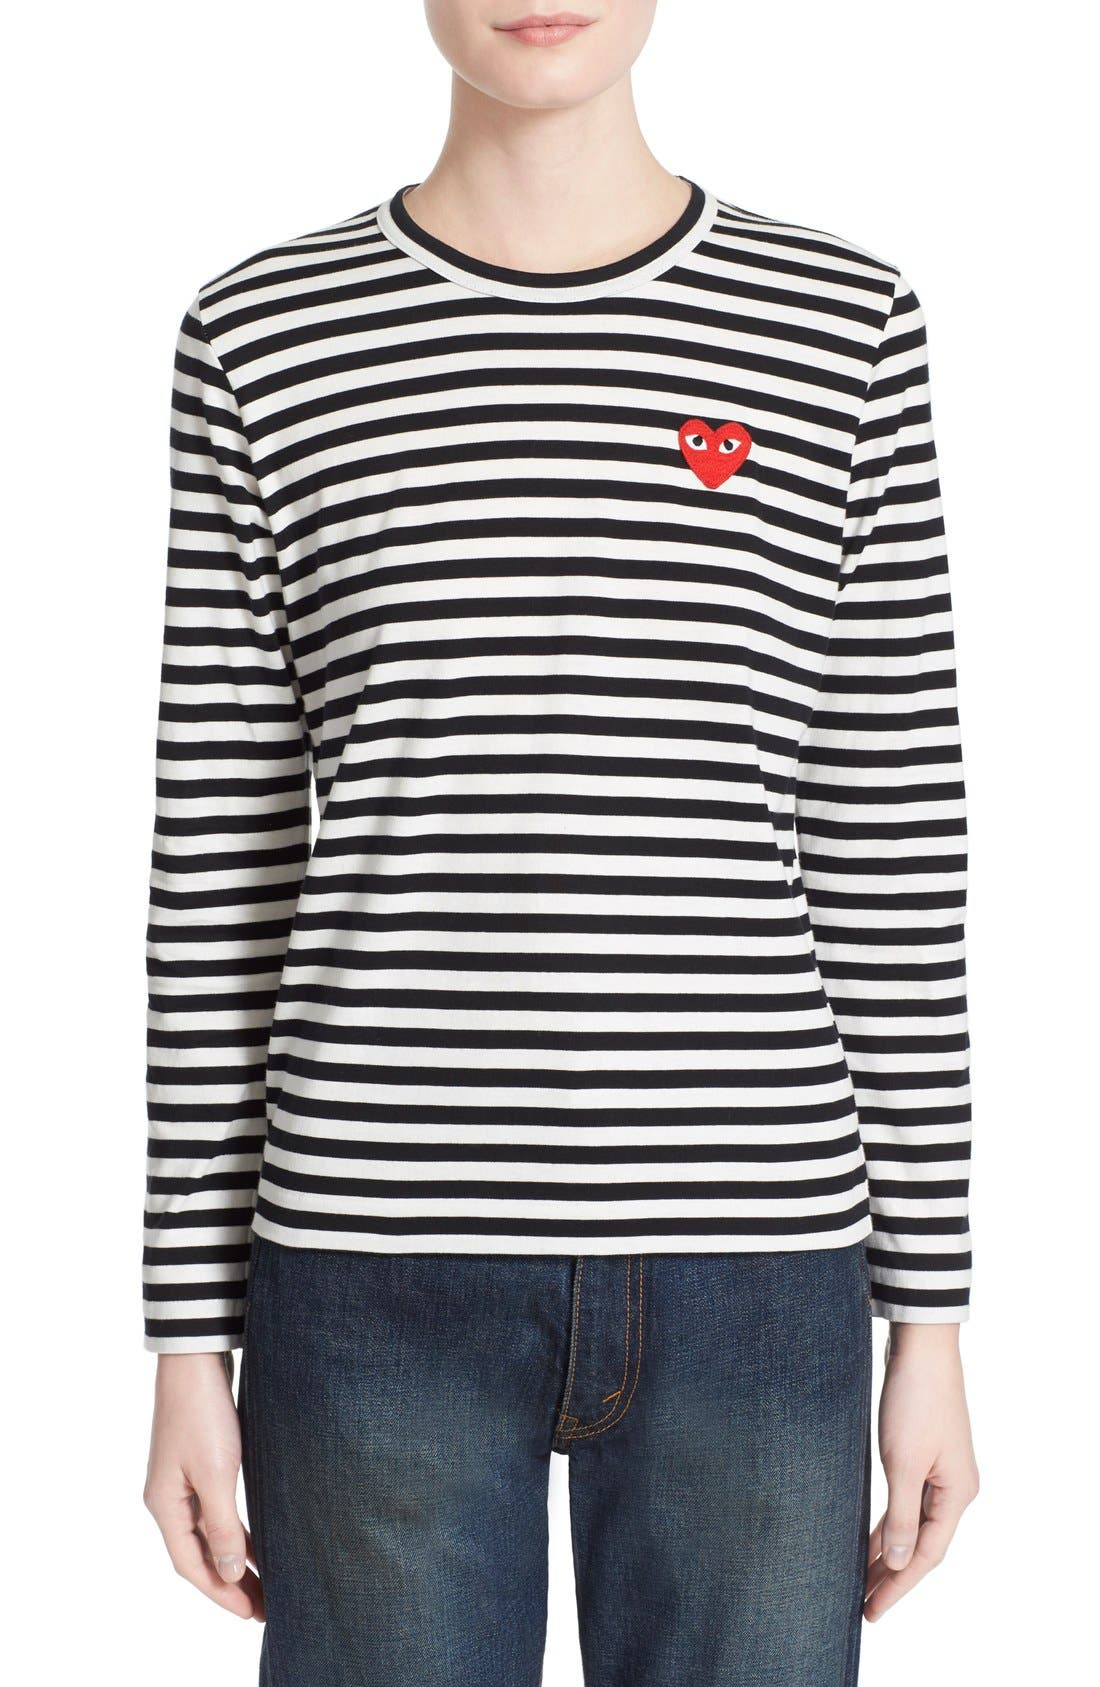 'Play' Stripe Cotton Tee,                             Main thumbnail 1, color,                             001